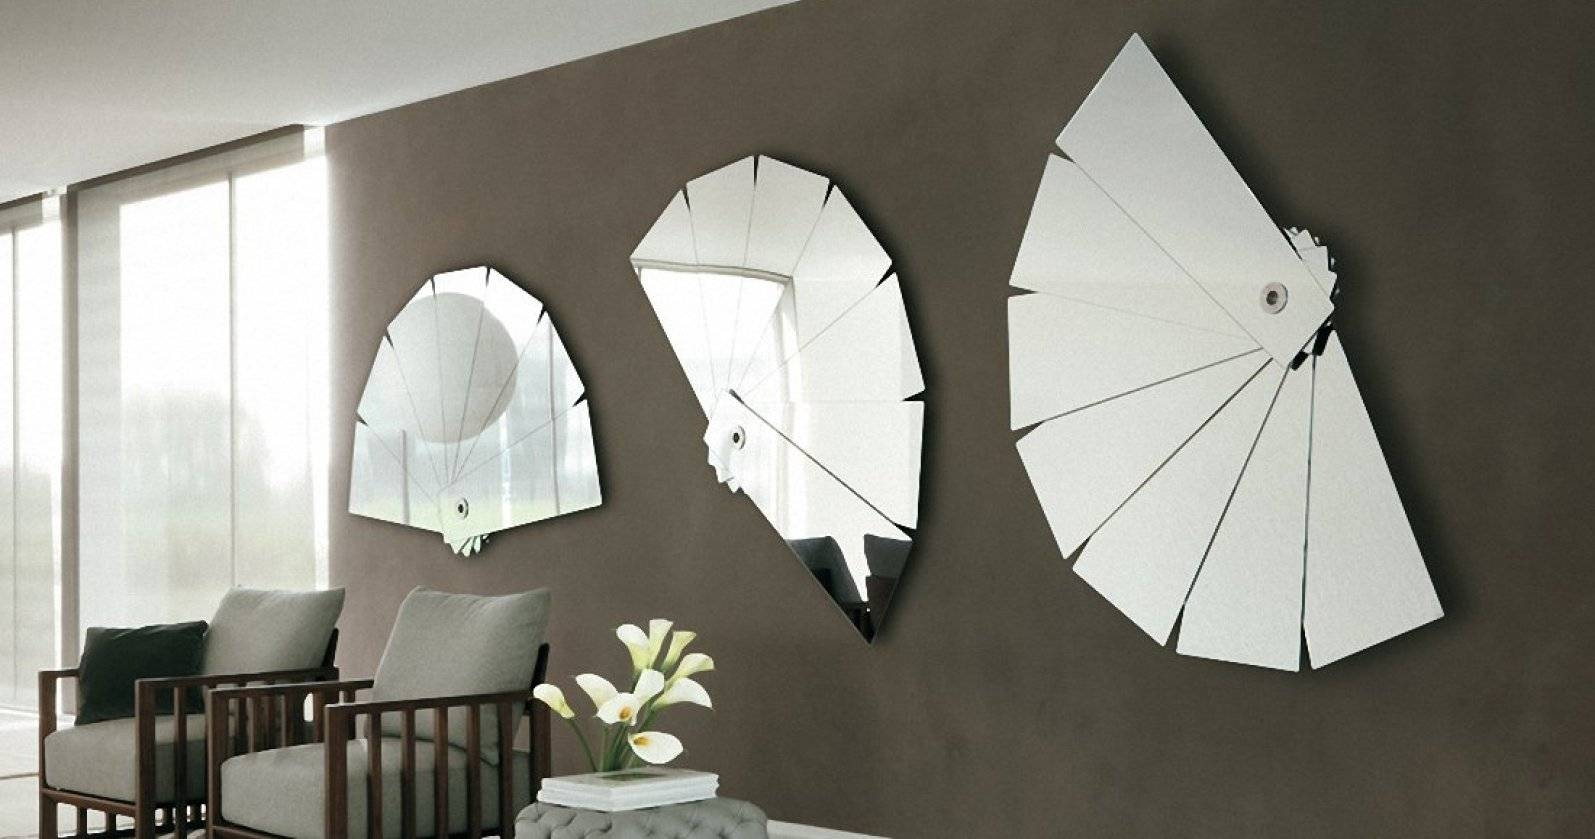 Alluring Illustration Of Munggah Like Lovely Duwur Fancy Like regarding Heart Shaped Mirrors for Walls (Image 2 of 15)